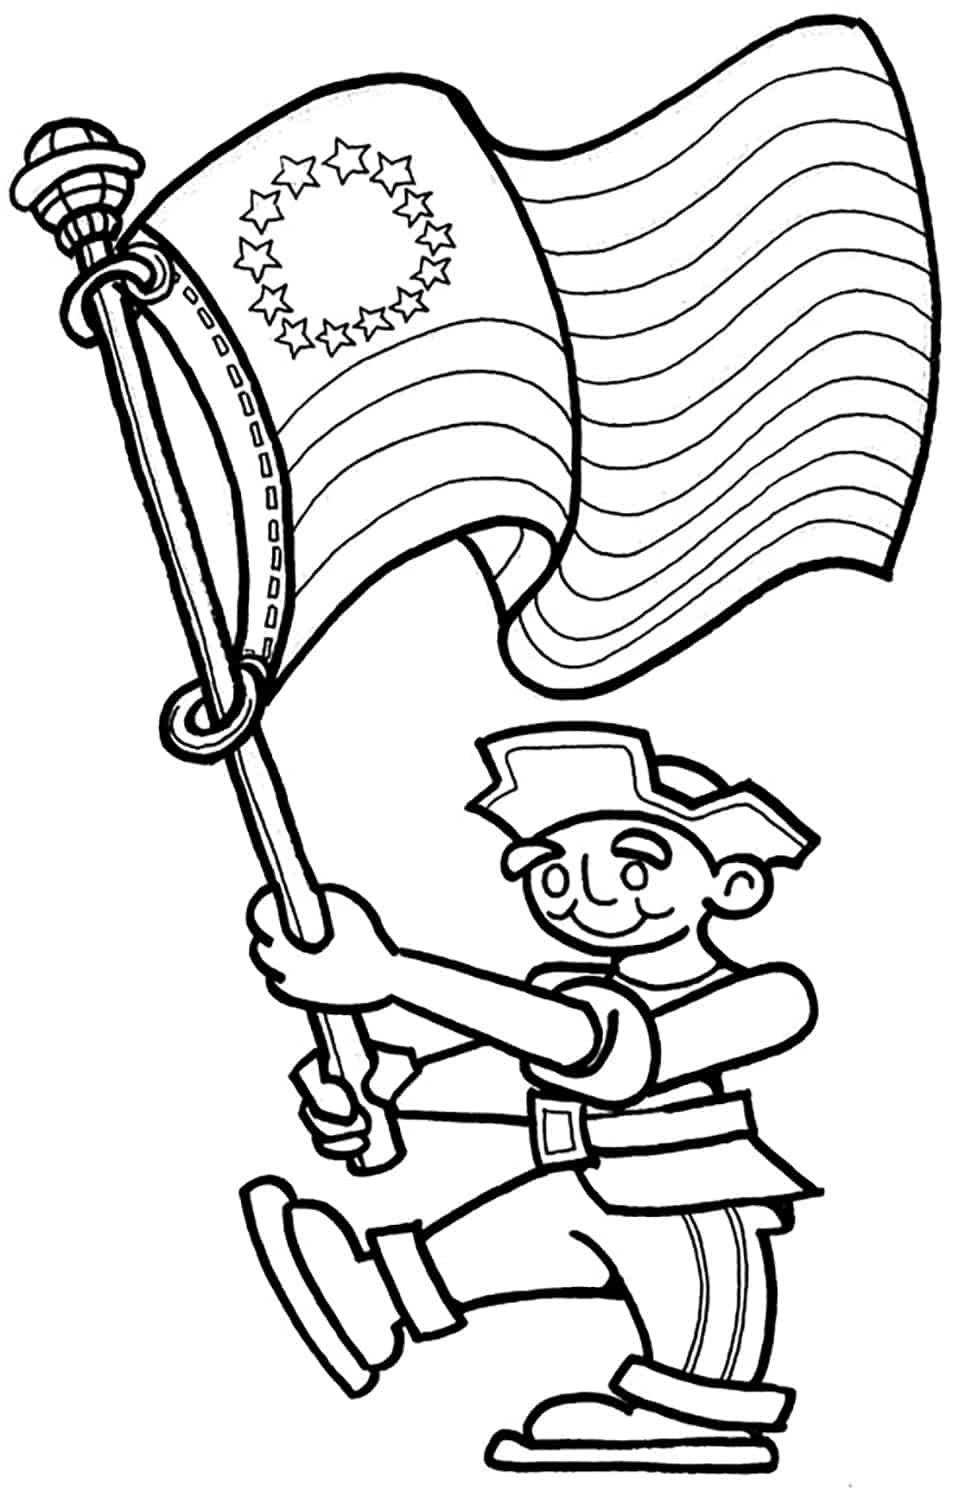 july 4 coloring pages july 4th coloring pages christianbookcom blog 4 coloring pages july